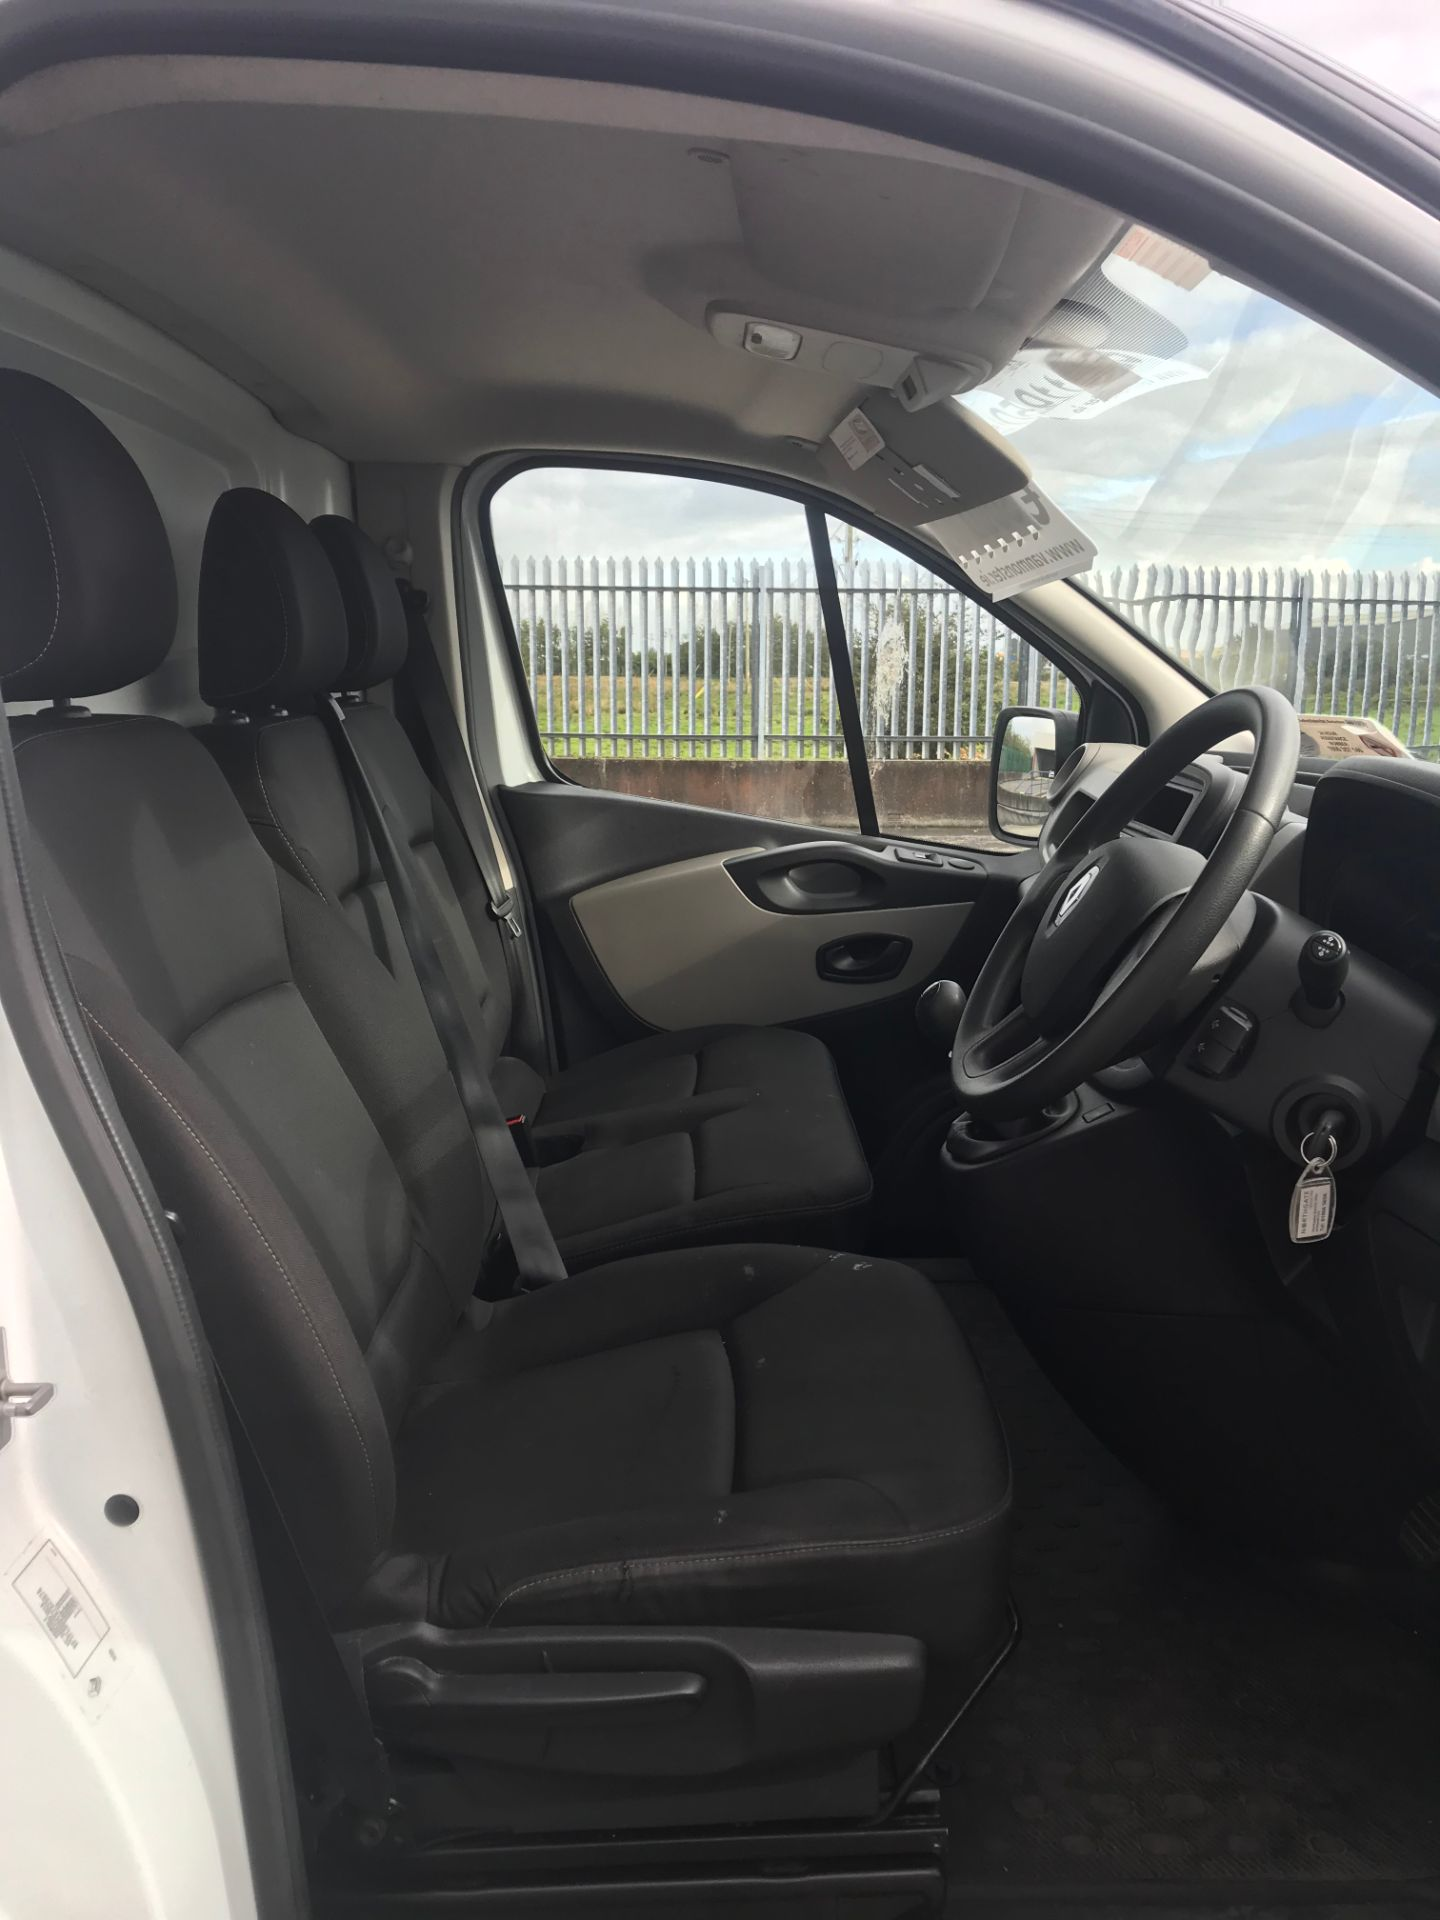 2017 Renault Trafic LL29 DCI 120 Business 3DR (171D25703) Image 13